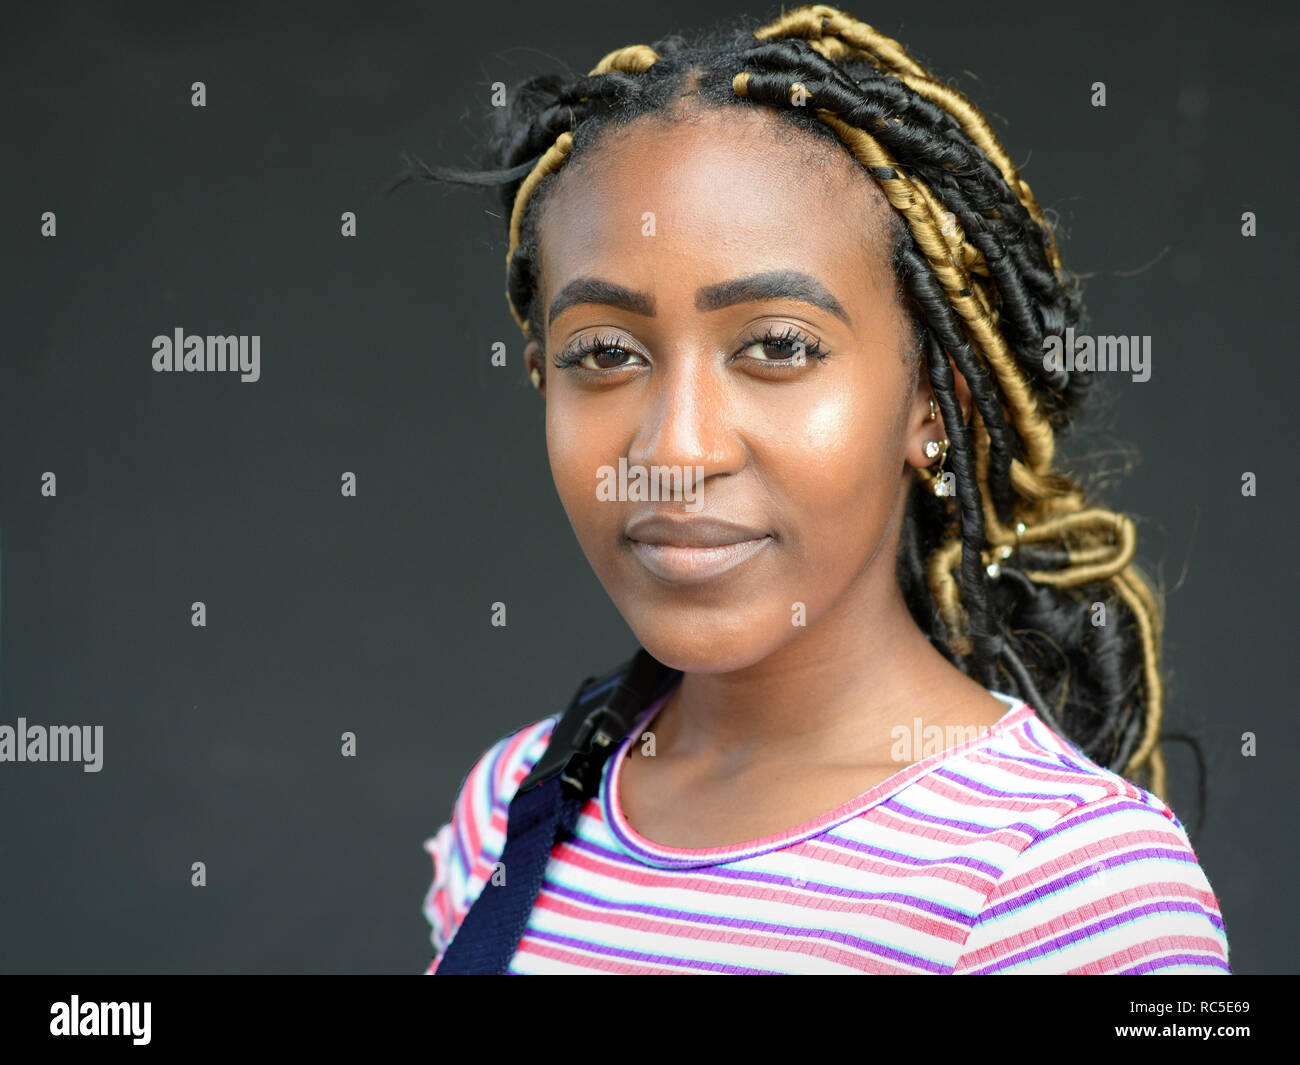 Young Afro-German beauty with blonde dyed dreadlocks poses for the camera. - Stock Image